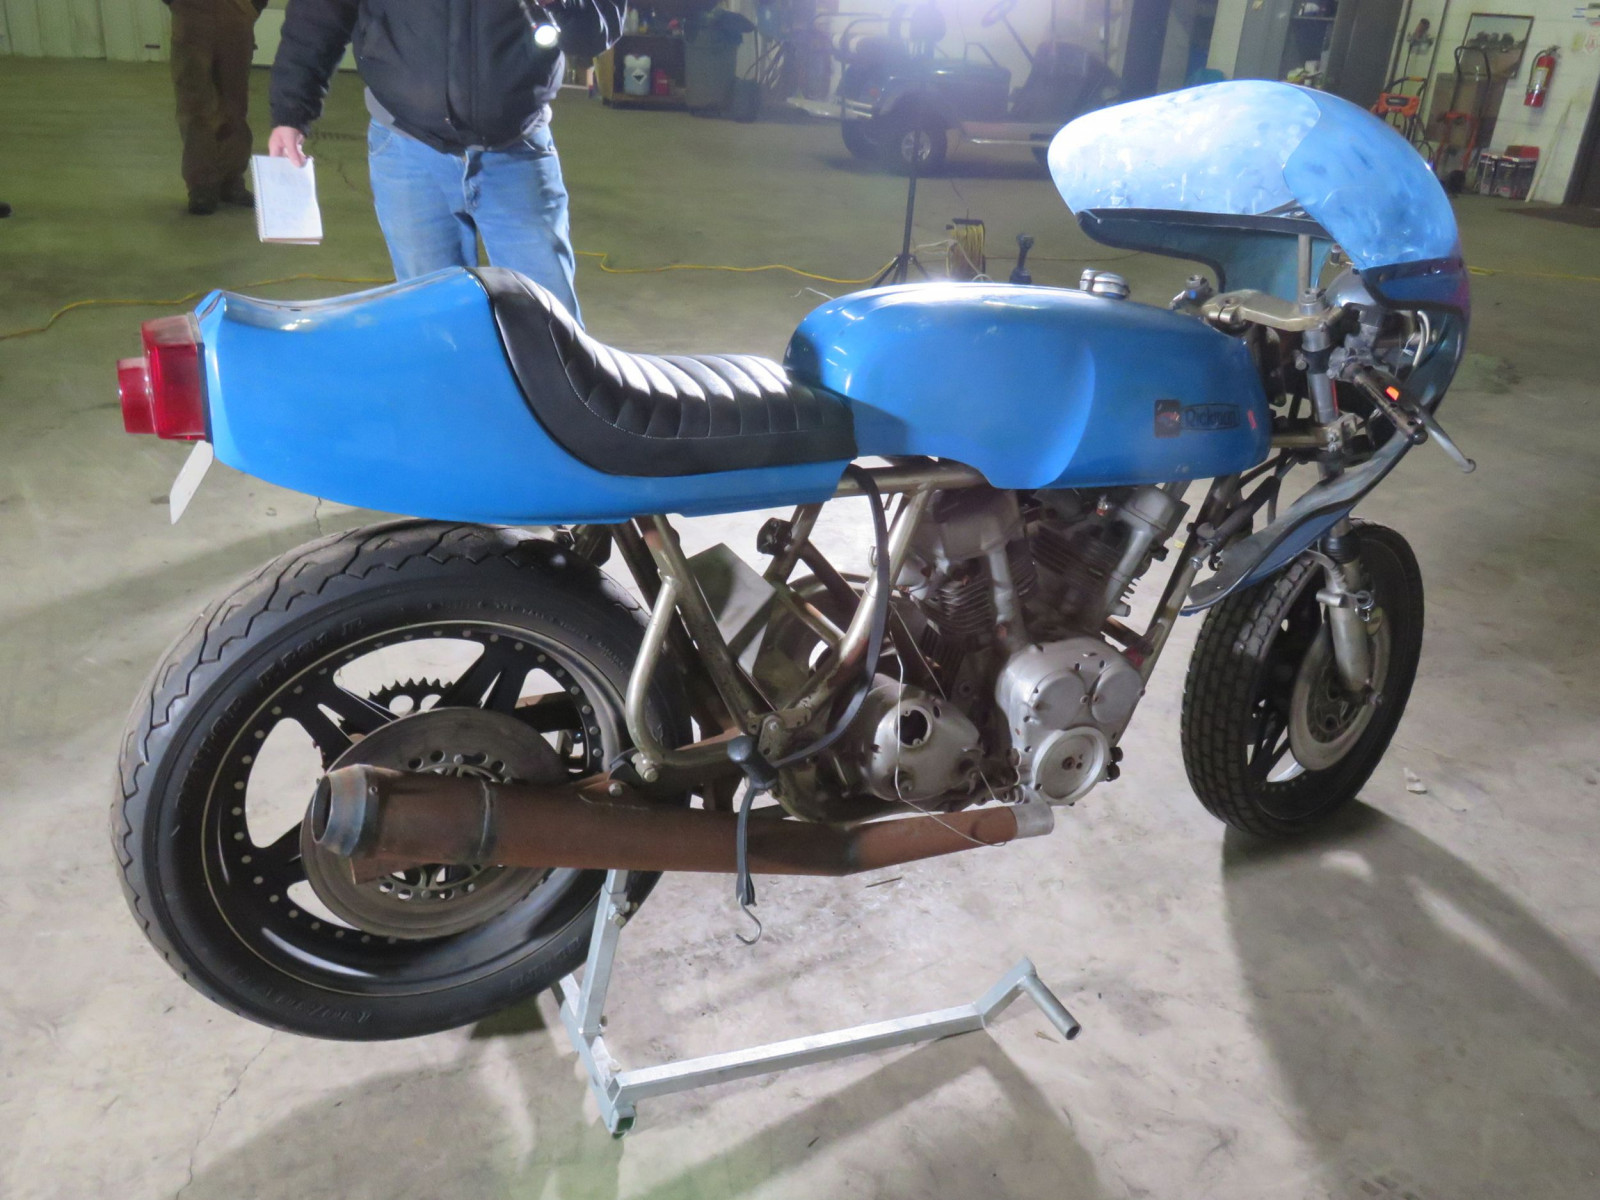 Homemade Mystery Motorcycle - Image 3